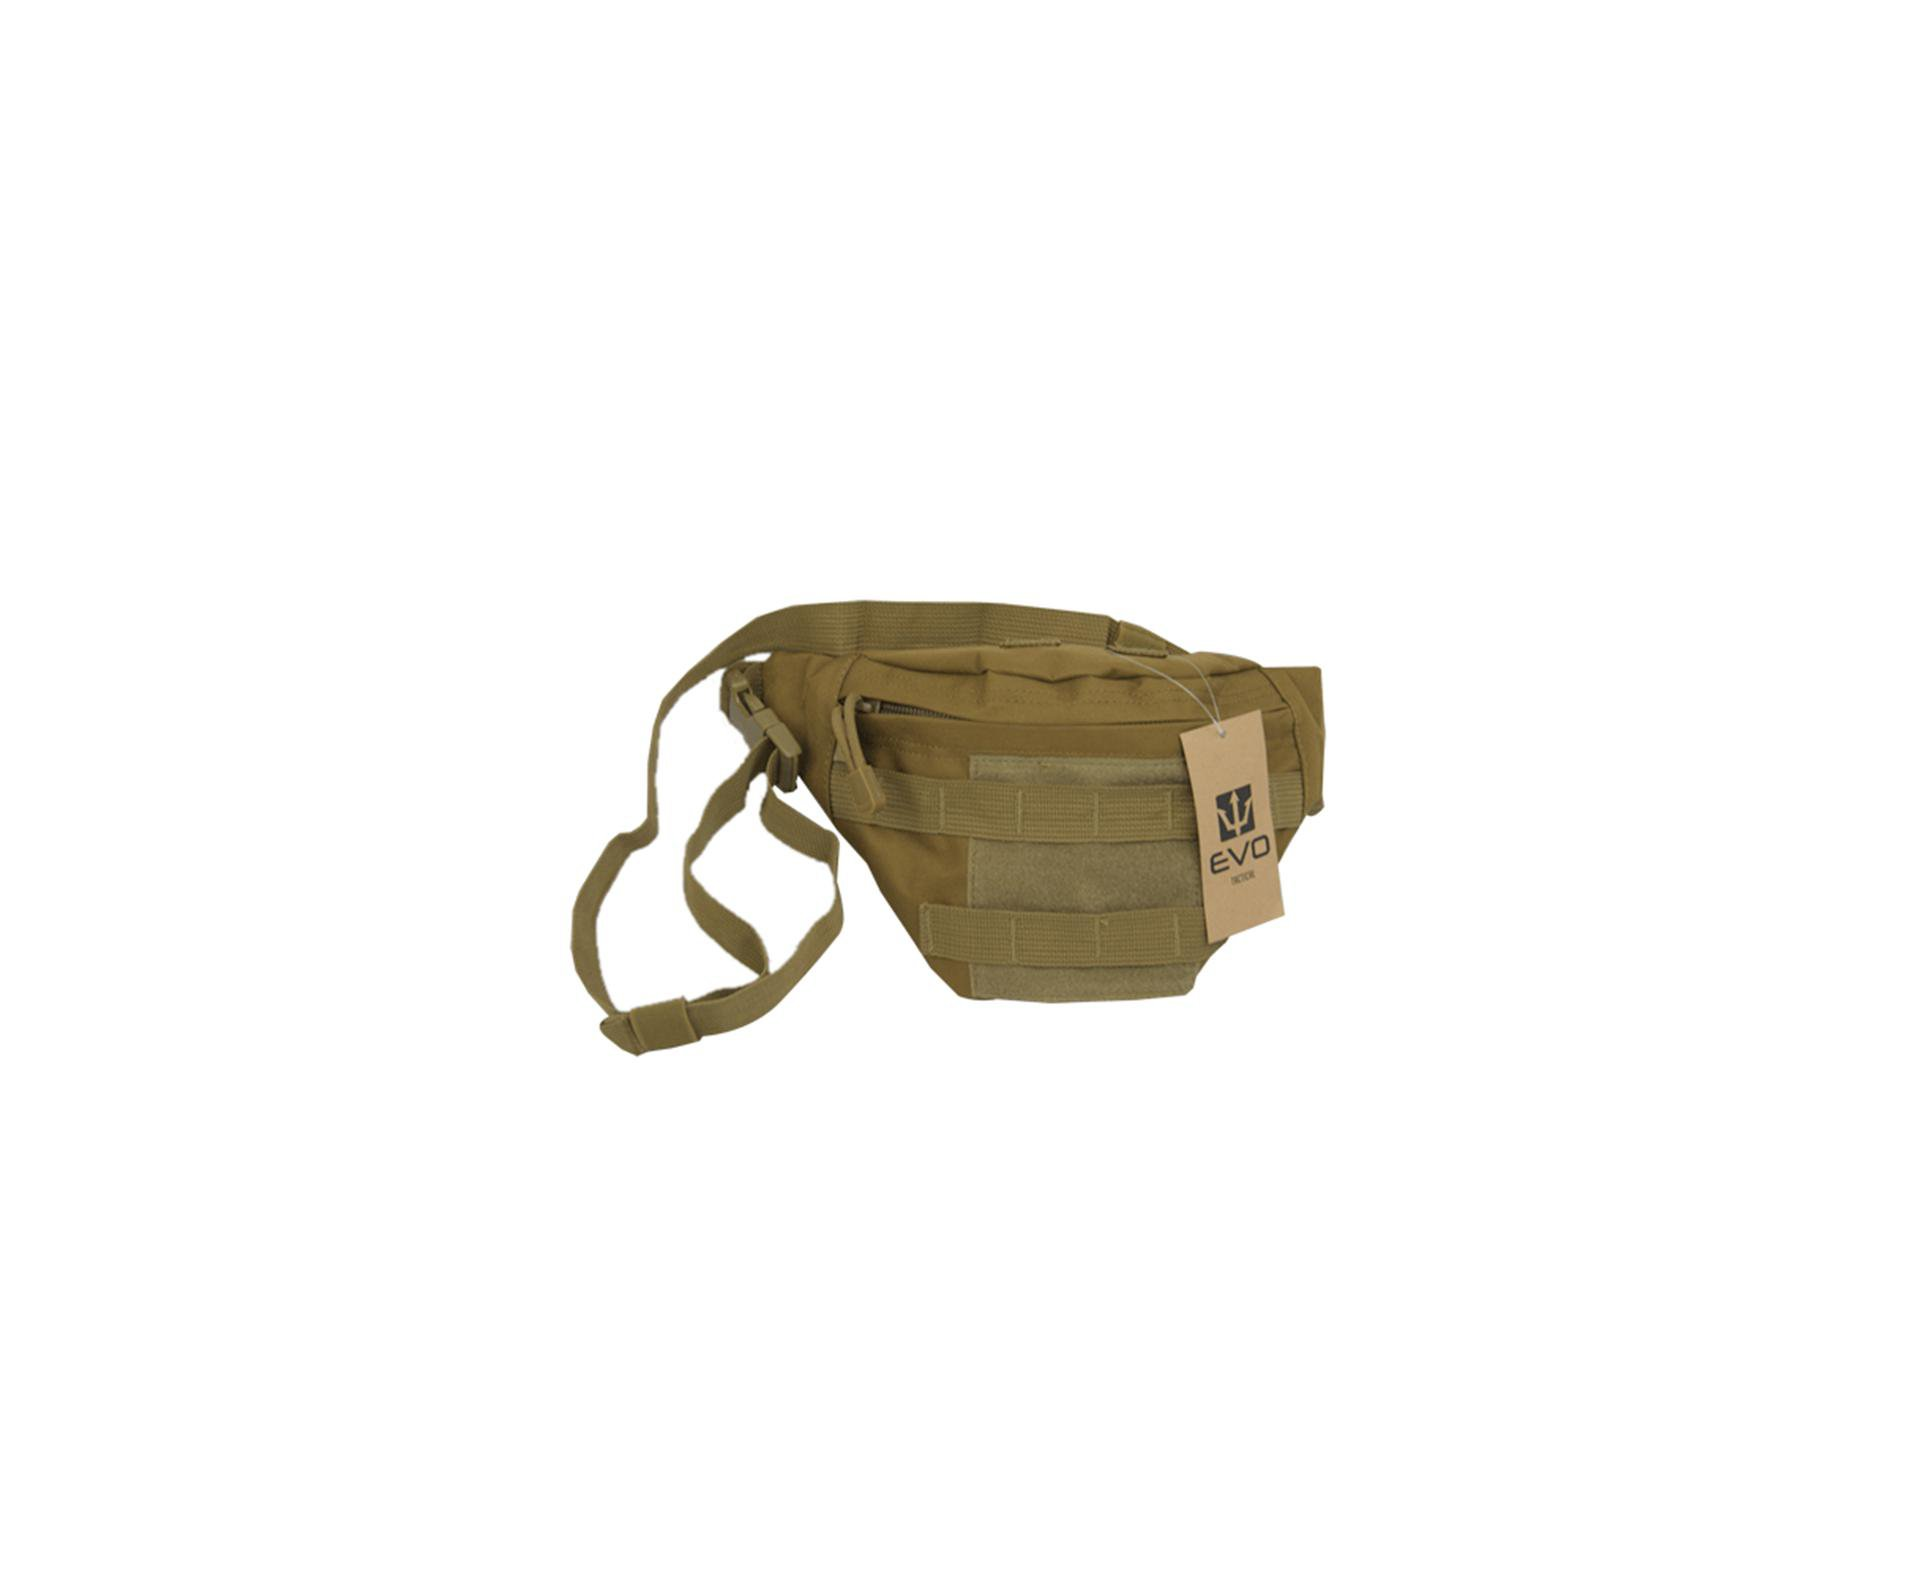 Bolsa Pochete Tática Waist Bag Po-018 Tan - Evo Tactical